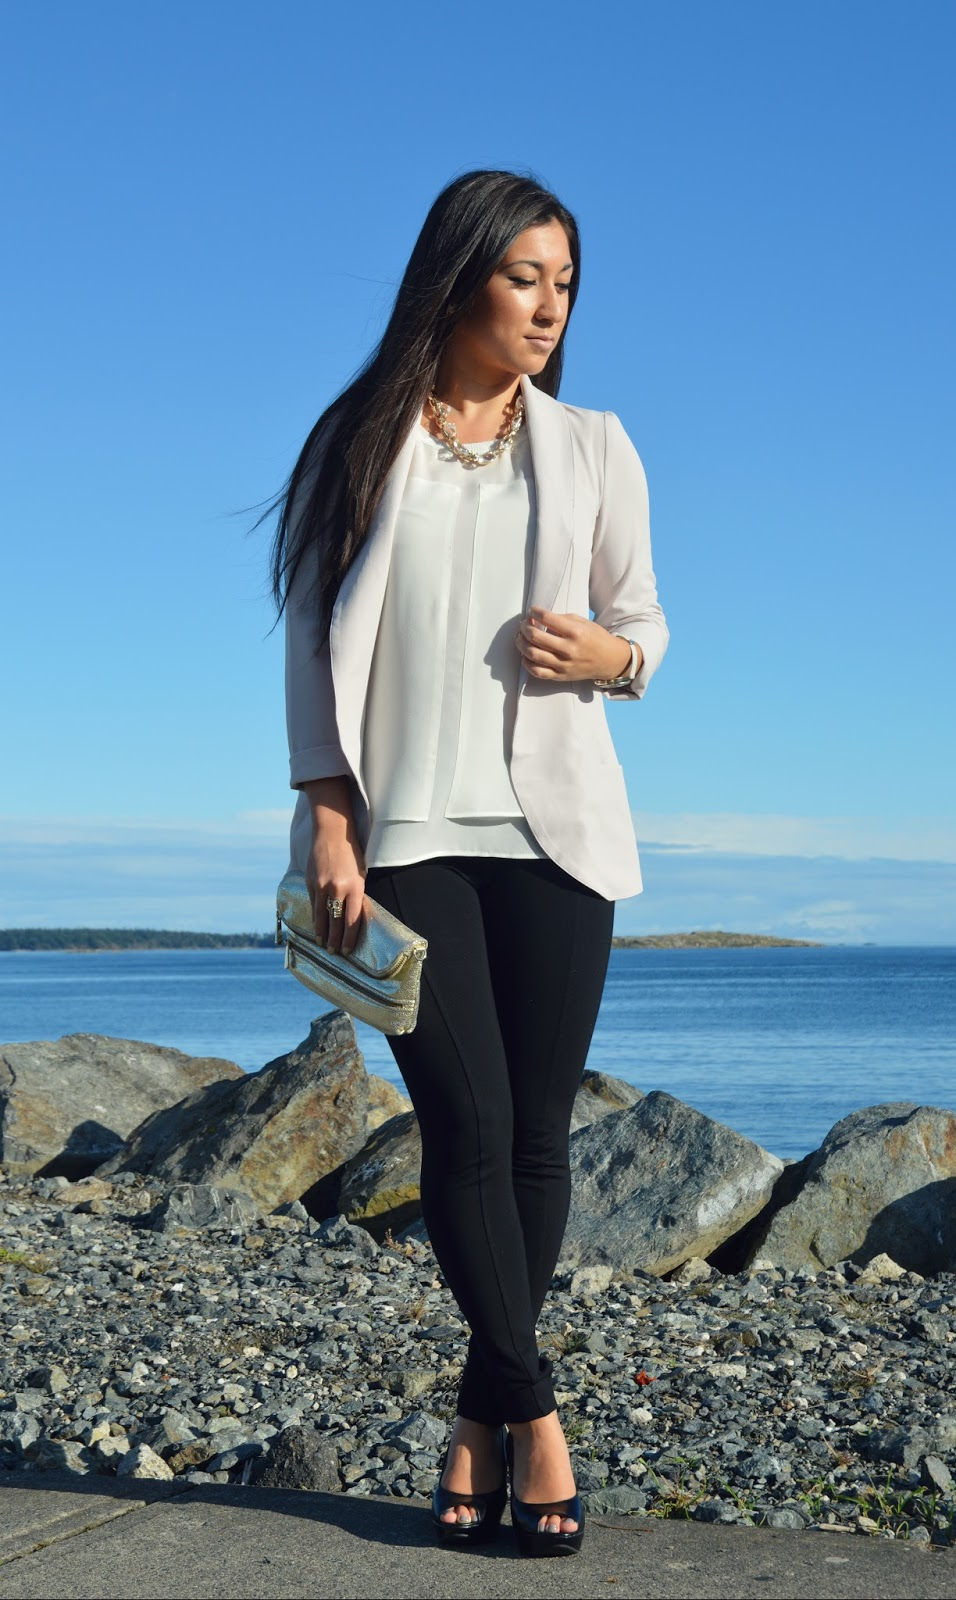 dynamite clothing wearing woven overpiece, sheer blouse and mid rise leggings